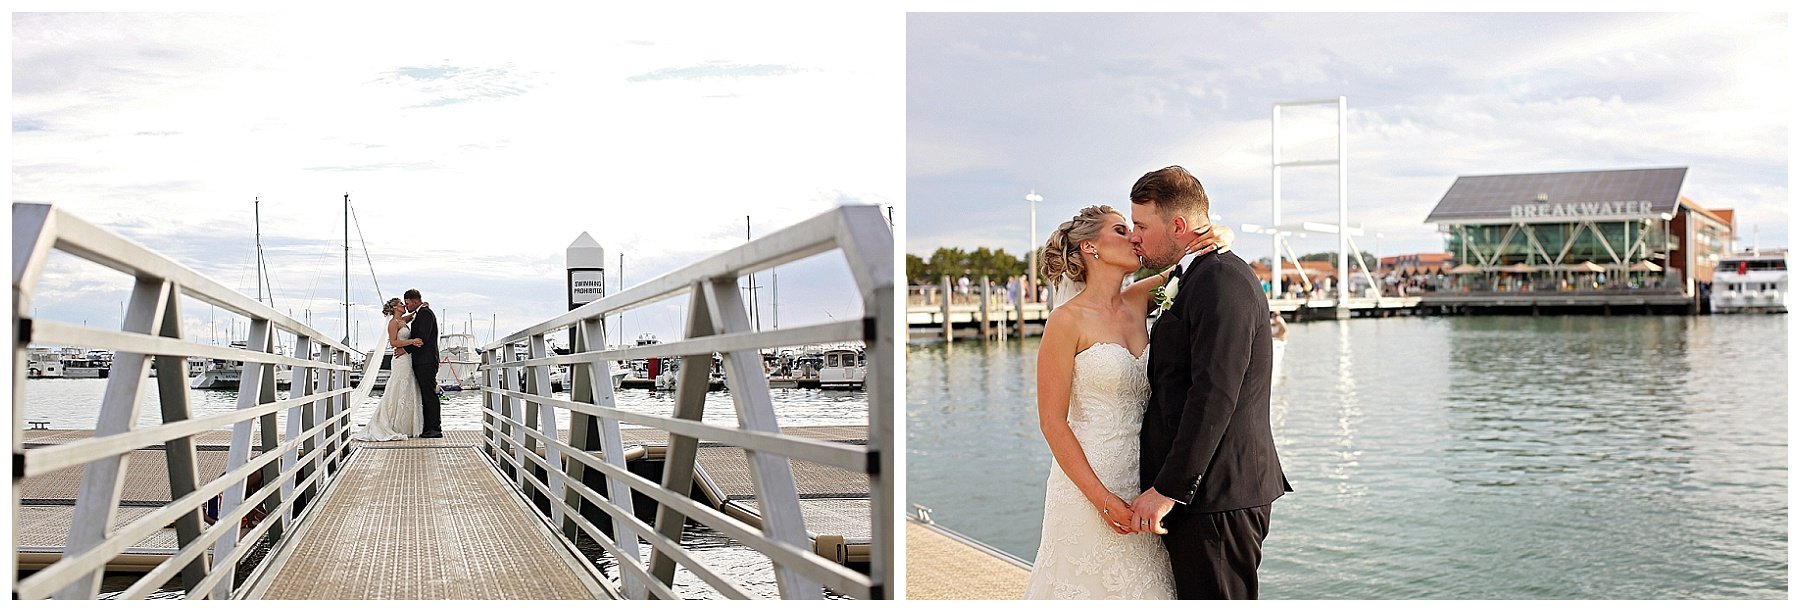 Wedding by the water Perth